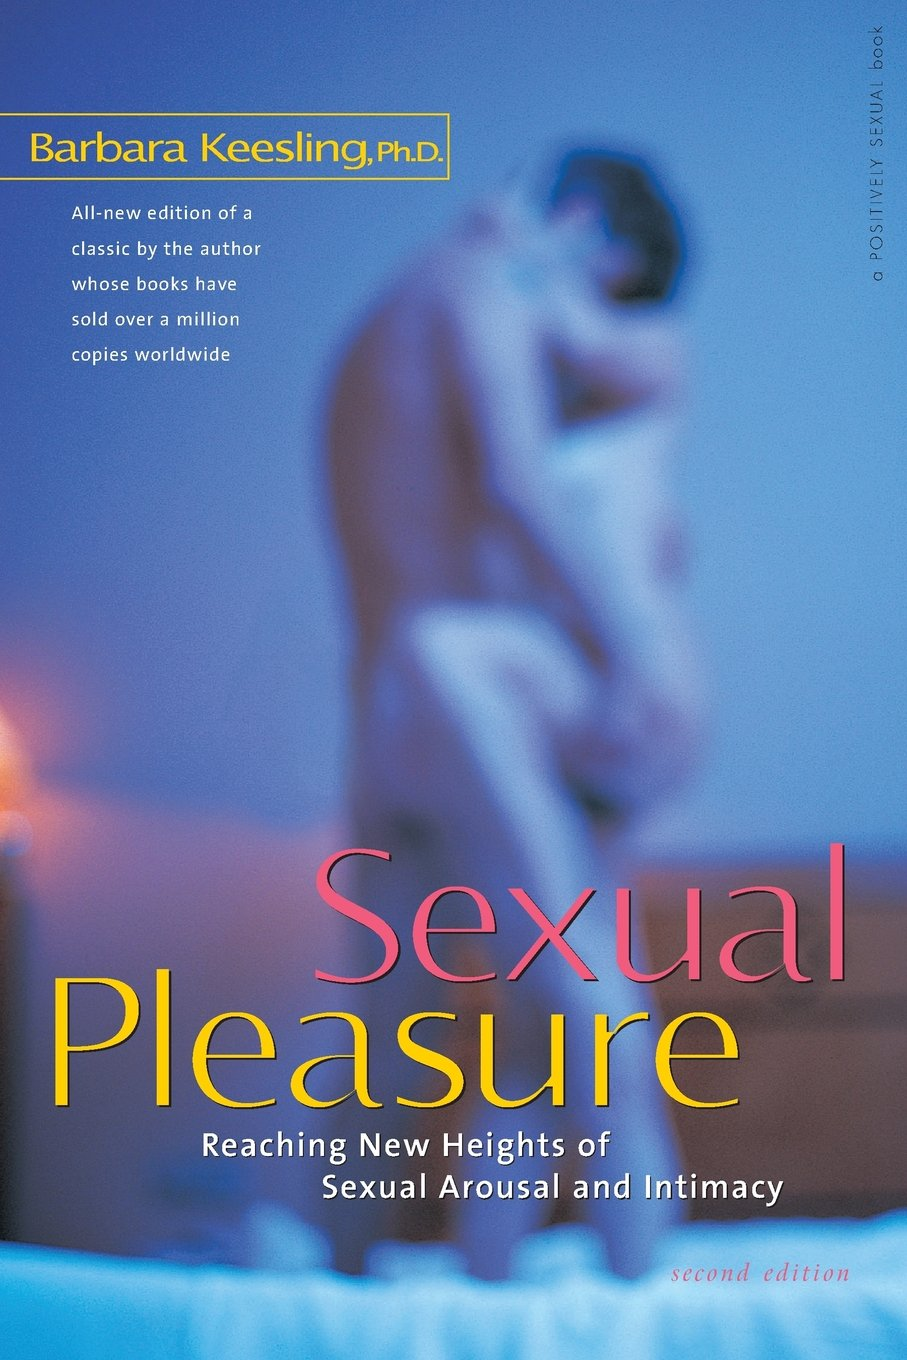 Sexual Pleasure: Reaching New Heights of Sexual Arousal and Intimacy  (Positively Sexual): Barbara Keesling Ph.D.: 9780897934350: Amazon.com:  Books